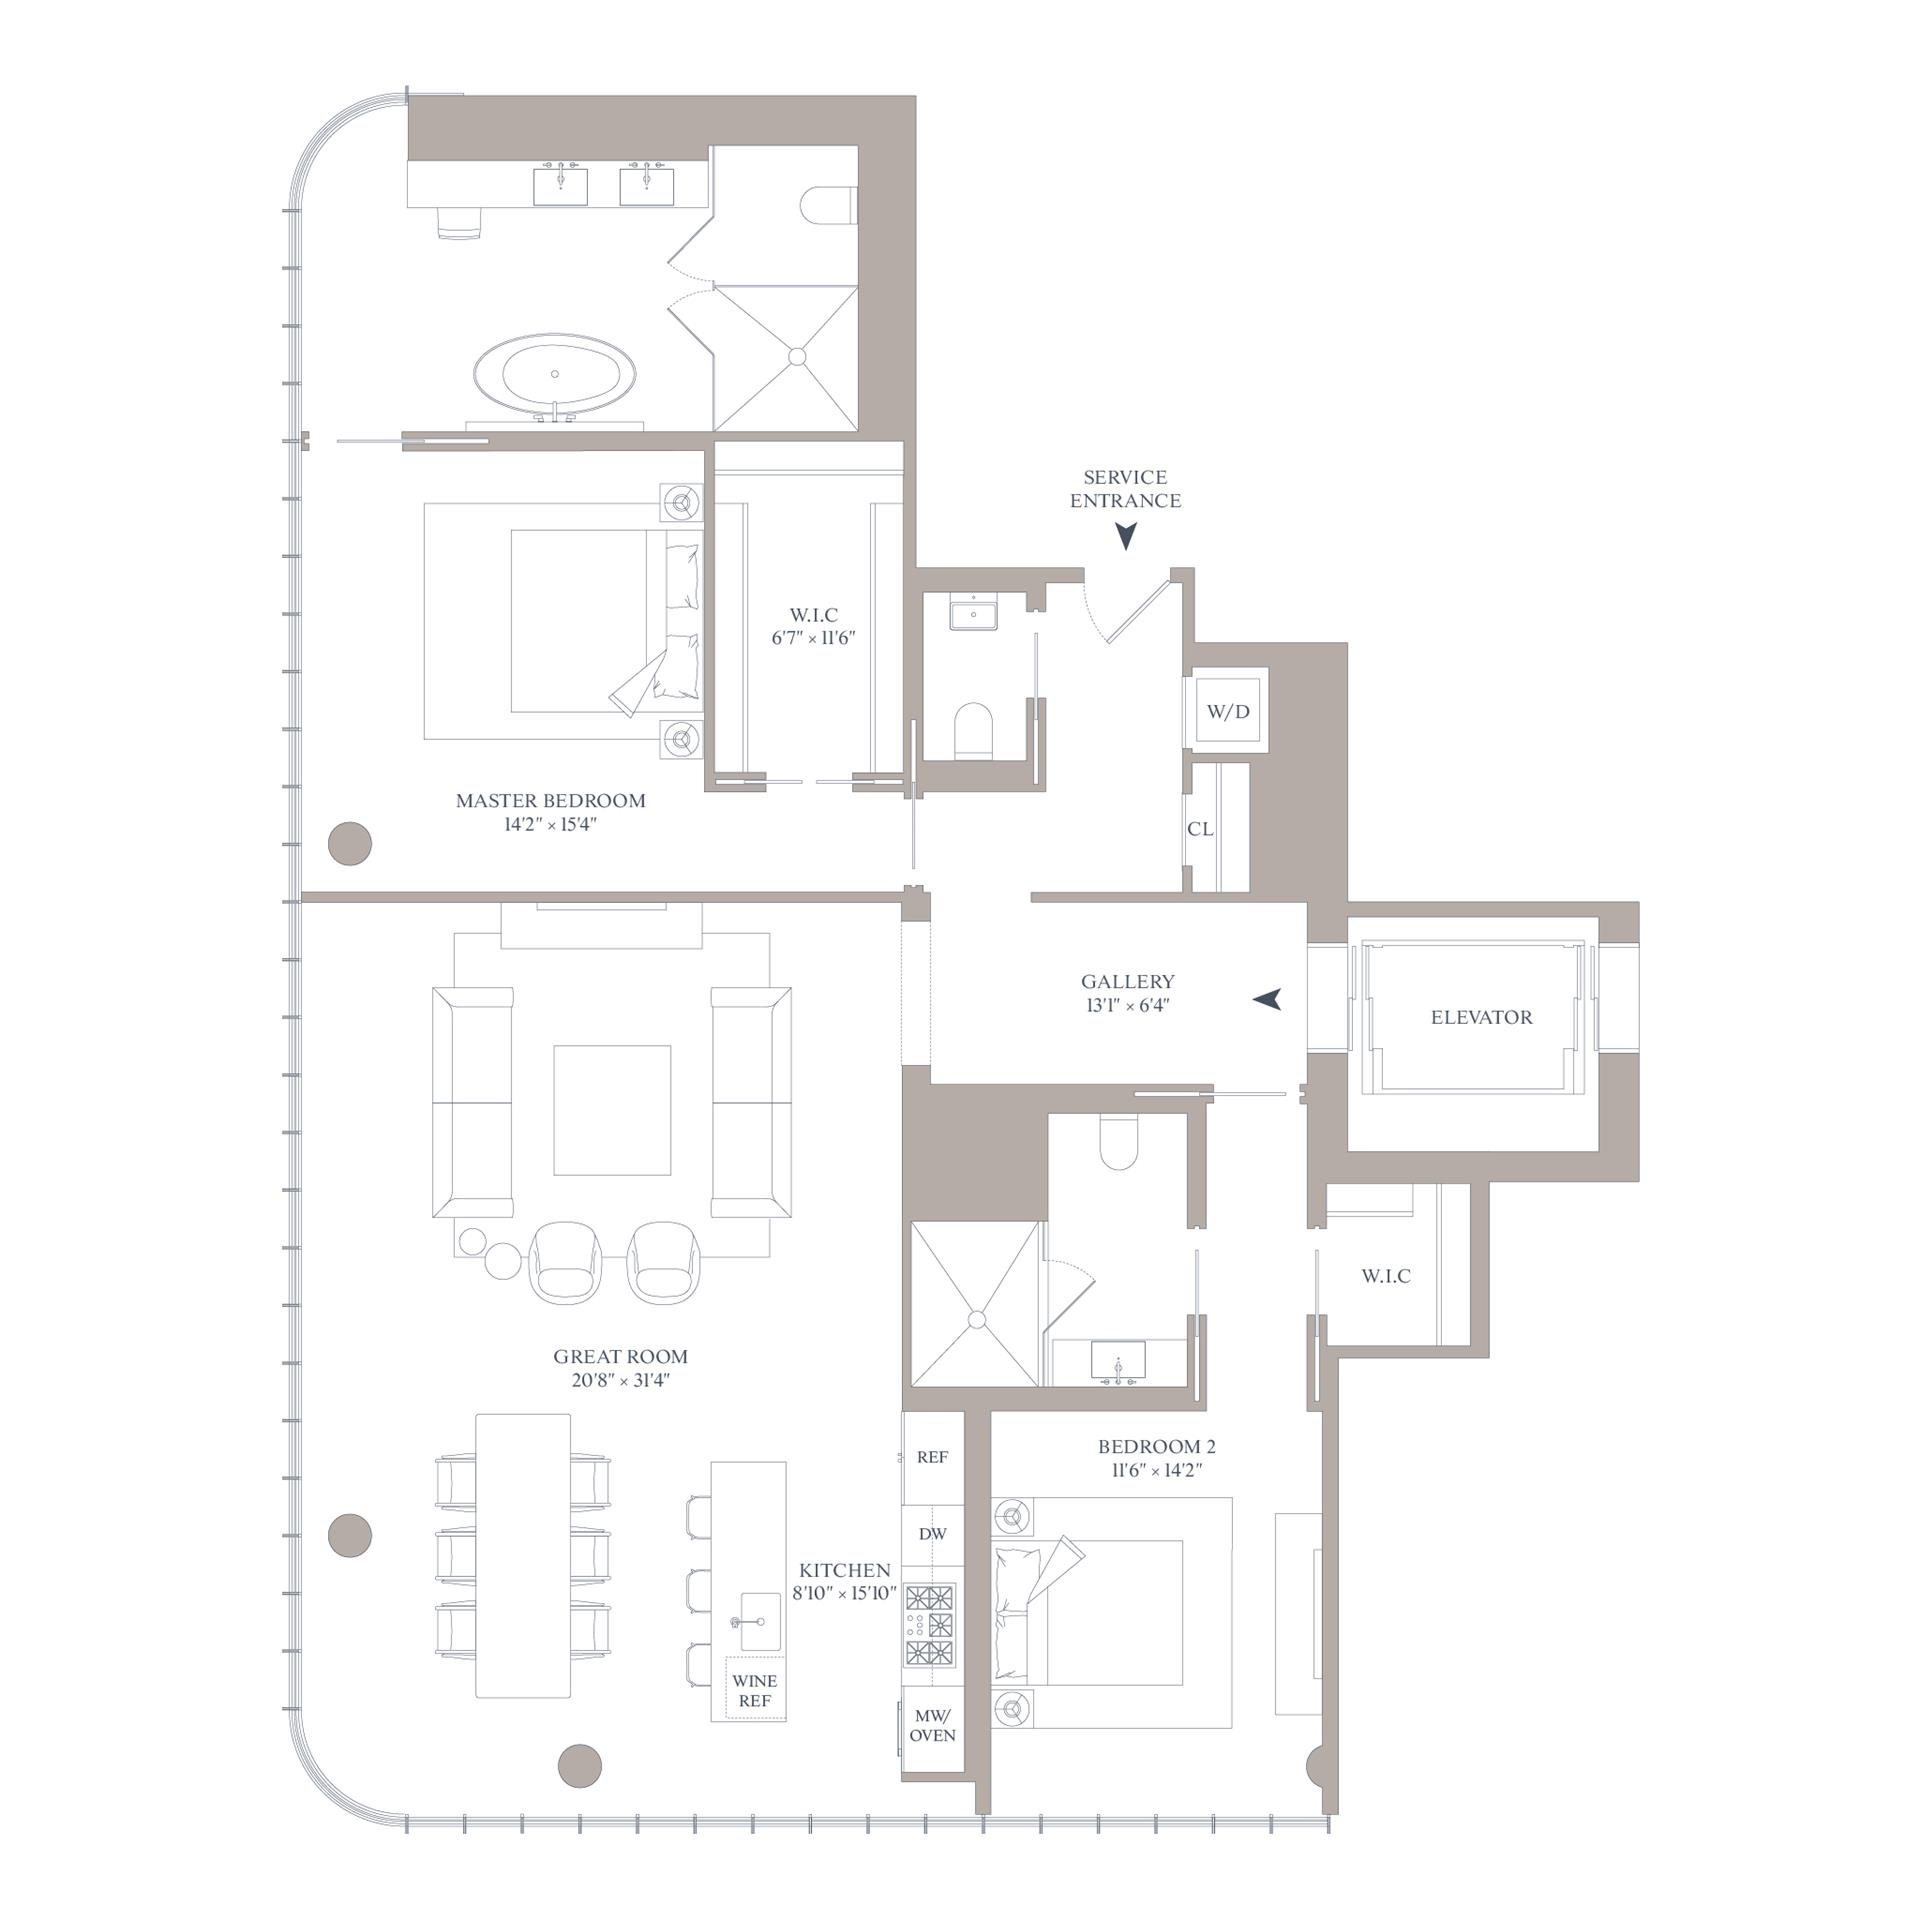 Floor plan of 565 Broome St, S19A - SoHo - Nolita, New York